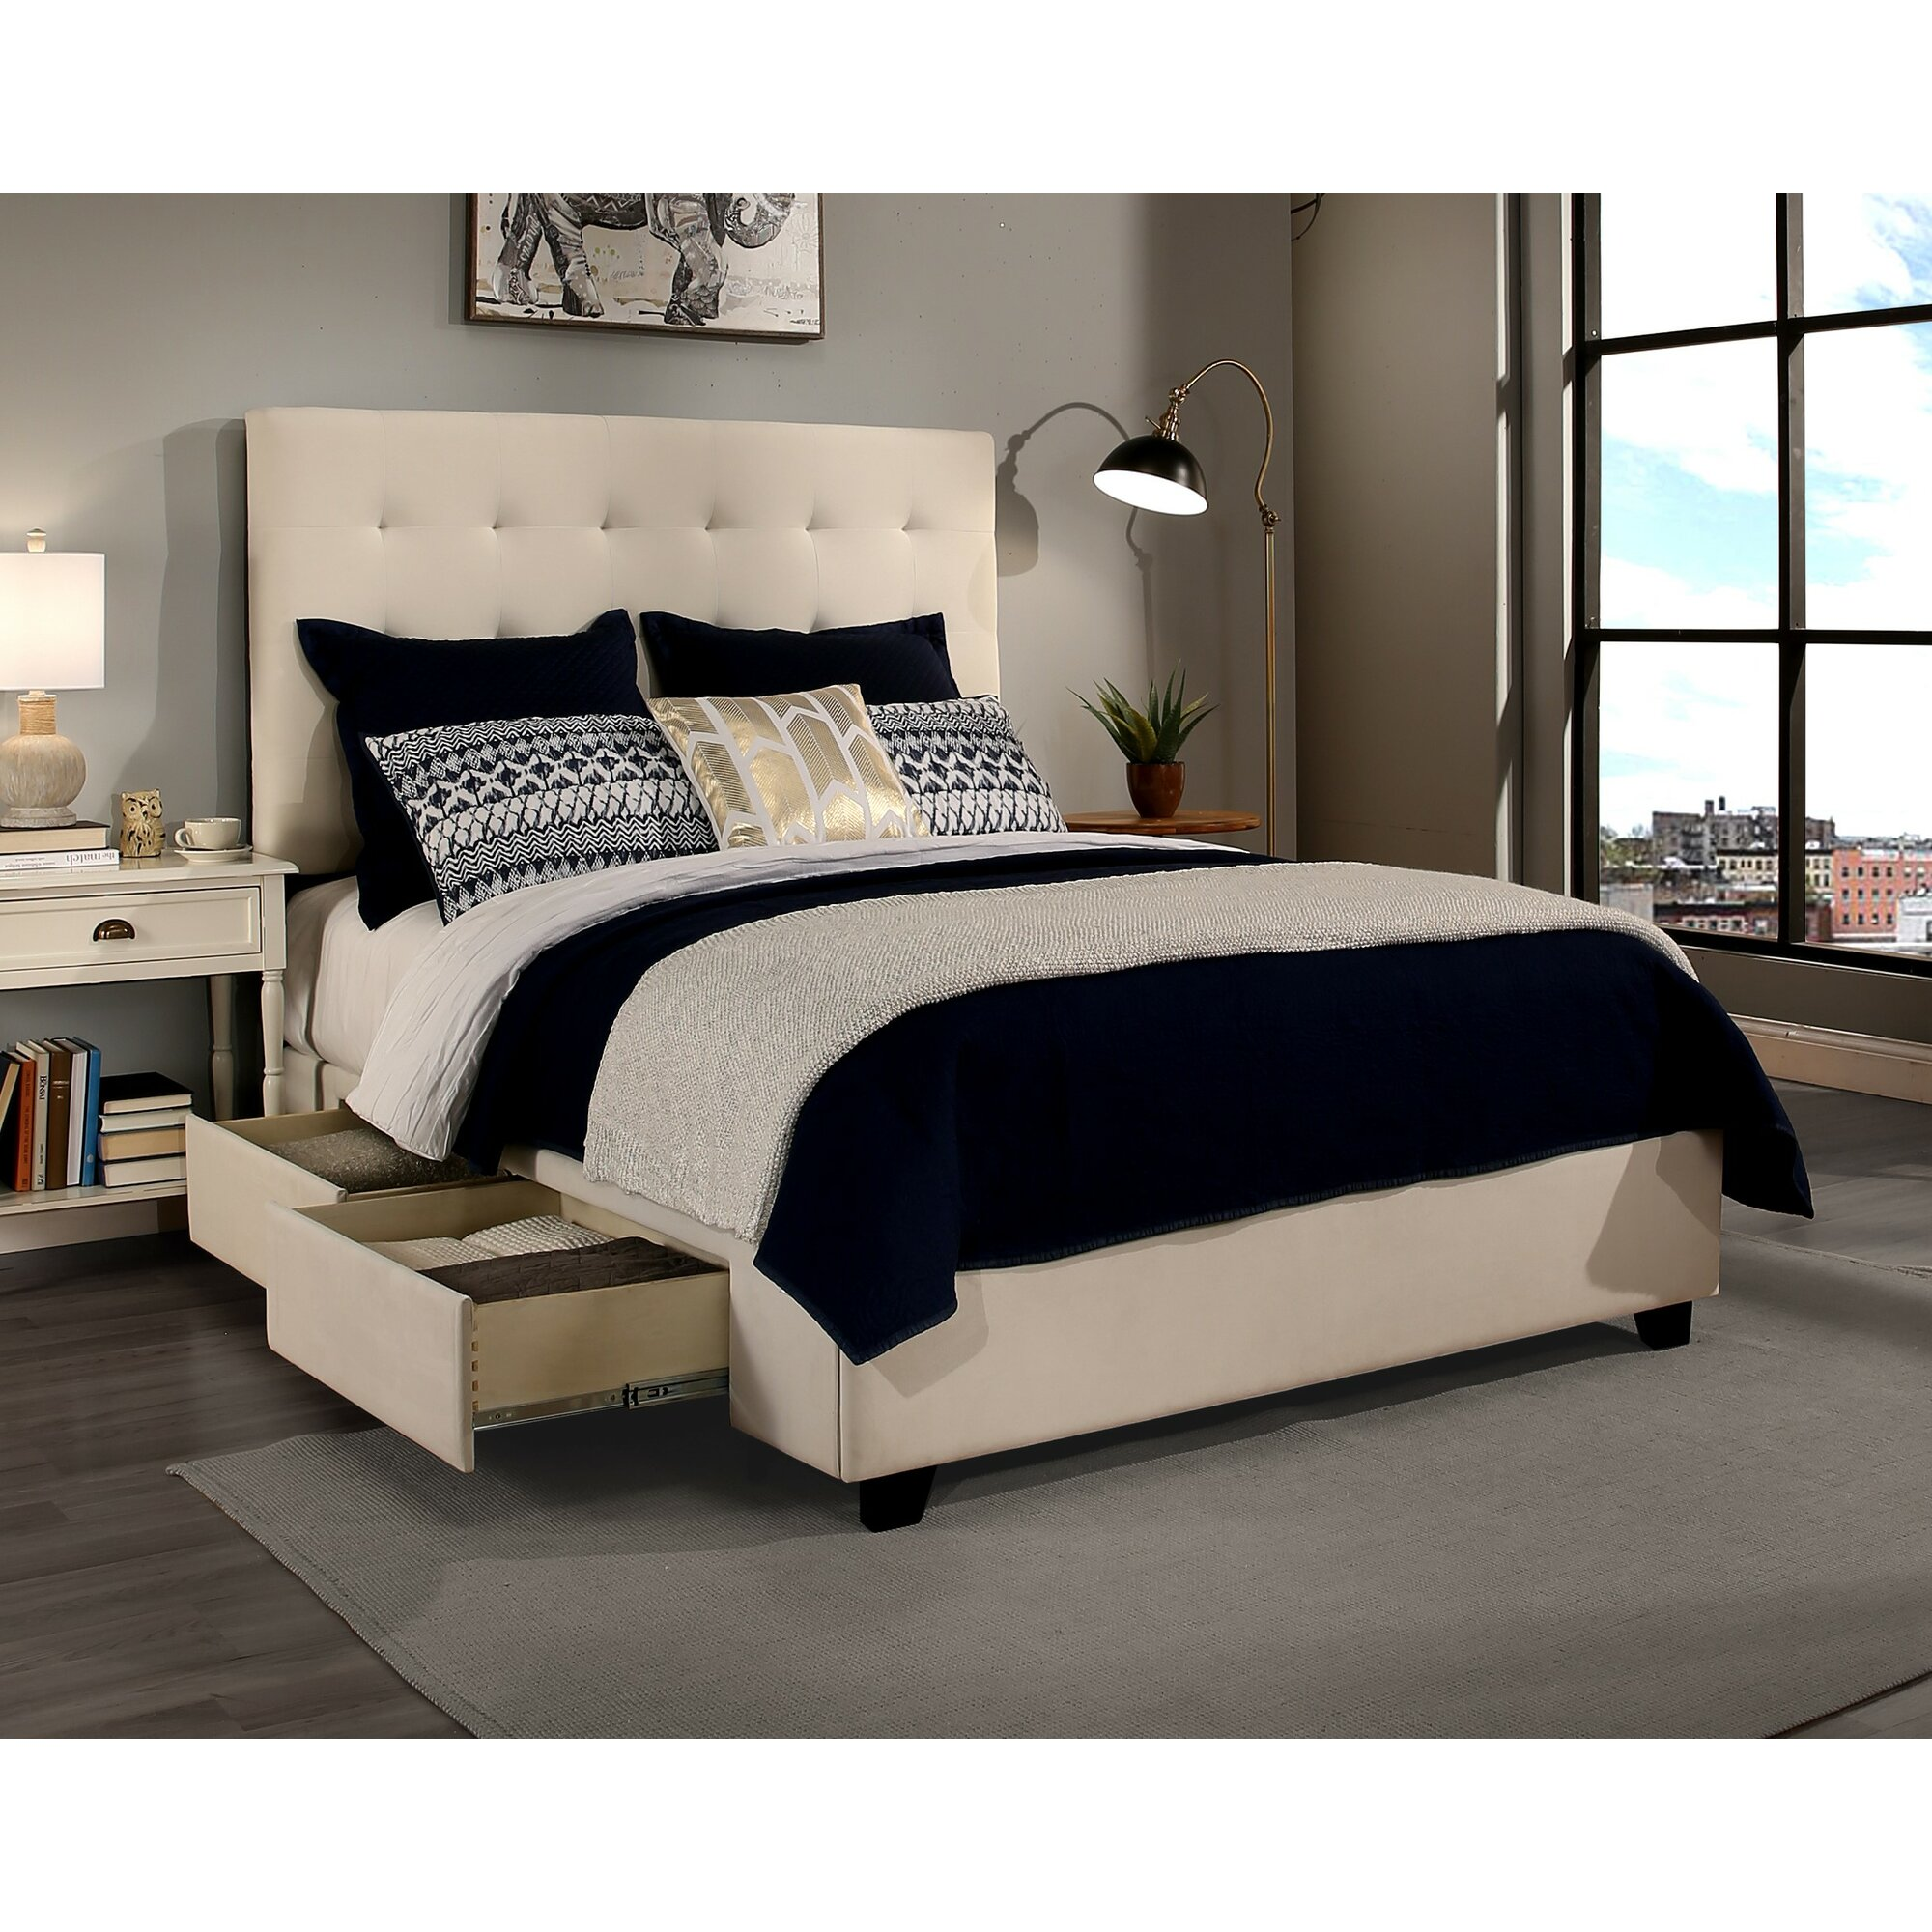 republicdesignhouse manhattan upholstered storage platform bed reviews wayfair. Black Bedroom Furniture Sets. Home Design Ideas